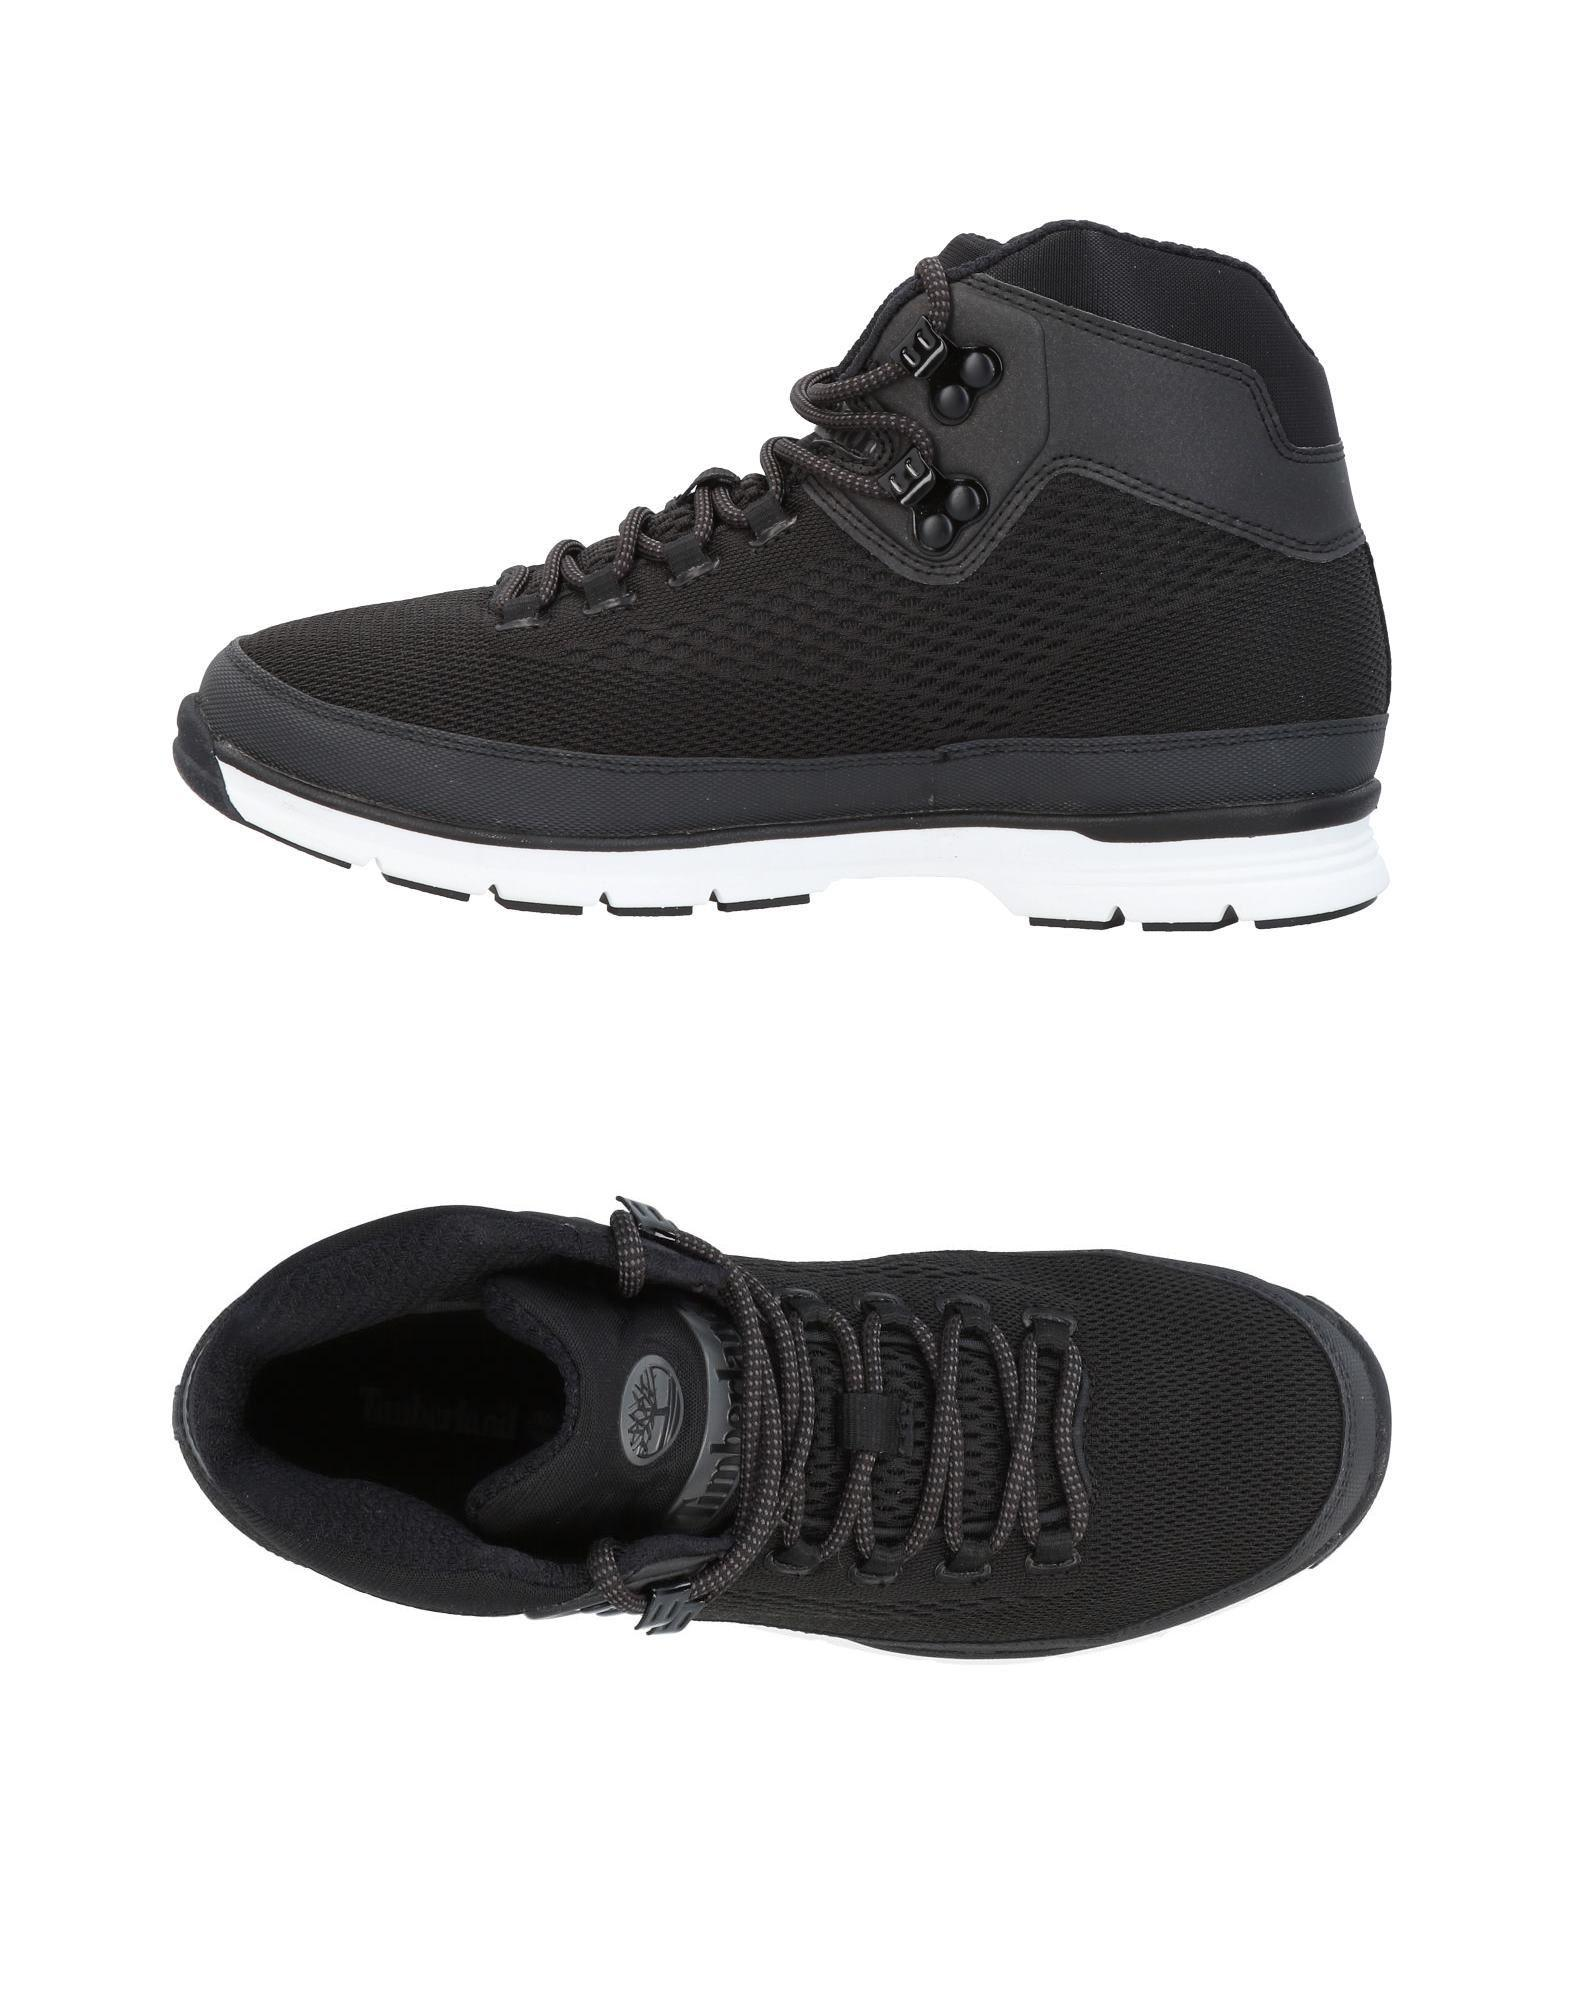 Timberland Sneakers In Black